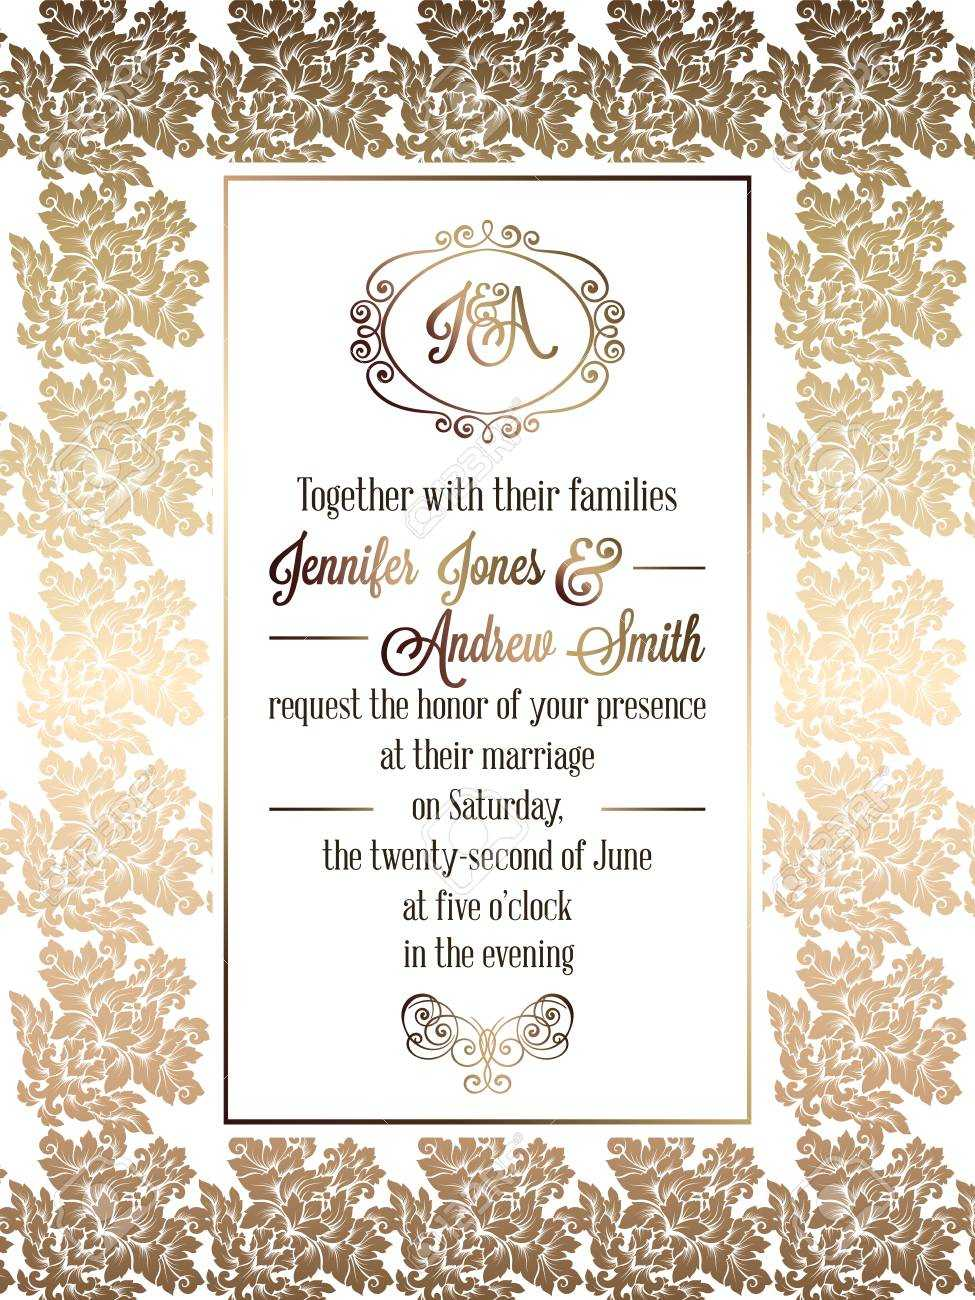 Vintage Baroque Style Wedding Invitation Card Template.. Elegant.. With Regard To Invitation Cards Templates For Marriage